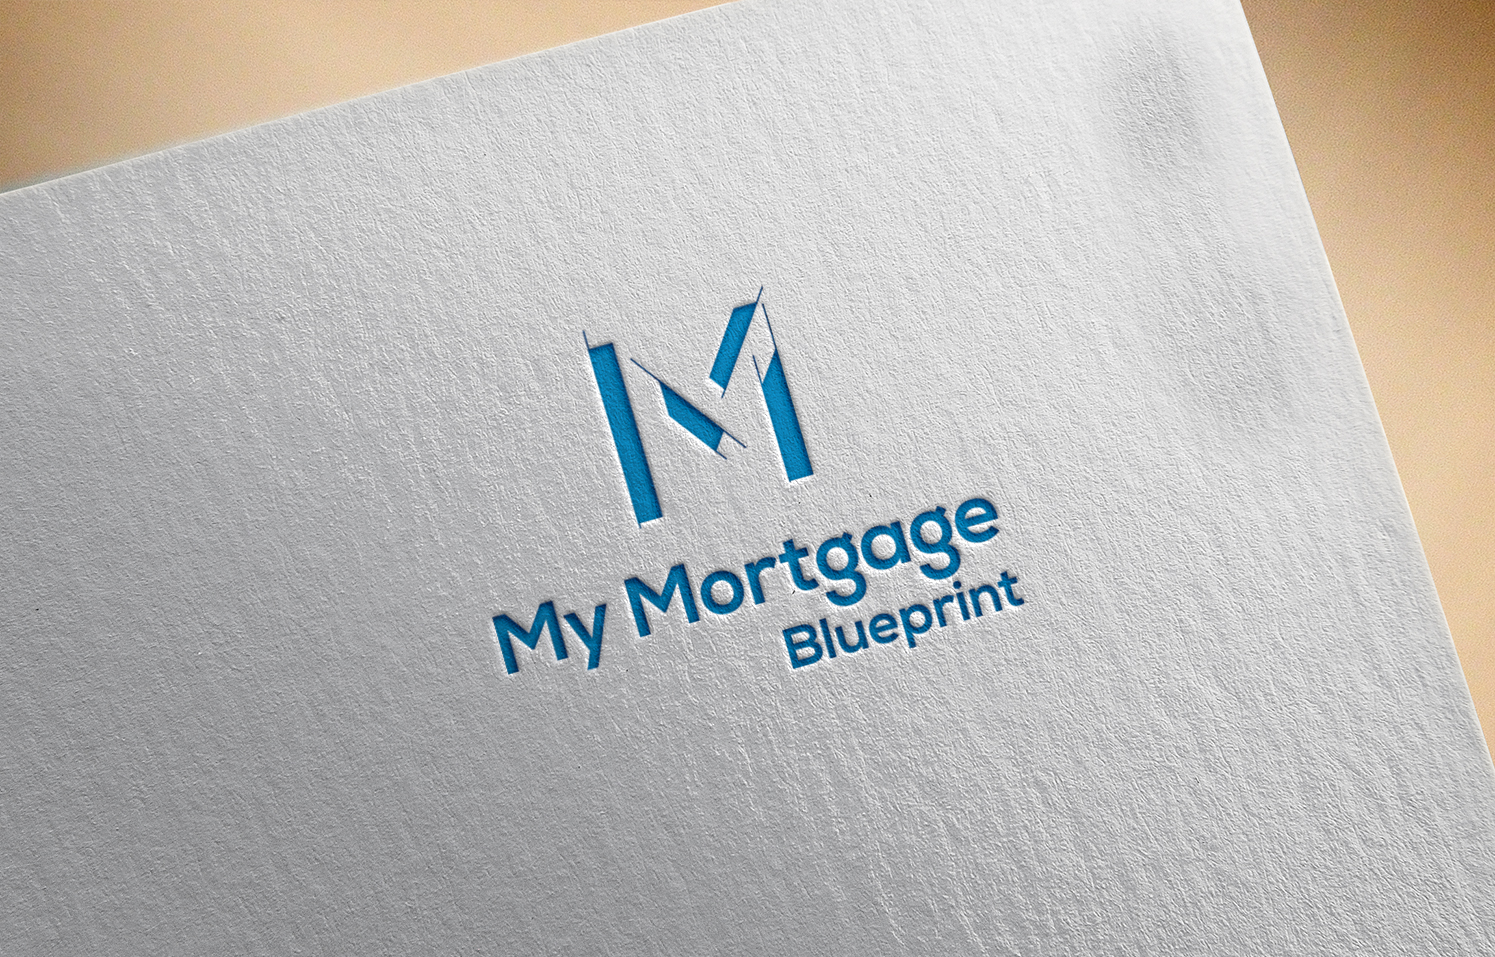 Professional bold mortgage logo design for my mortgage blueprint logo design by seoanalyst for my mortgage blueprint design 15555164 malvernweather Images